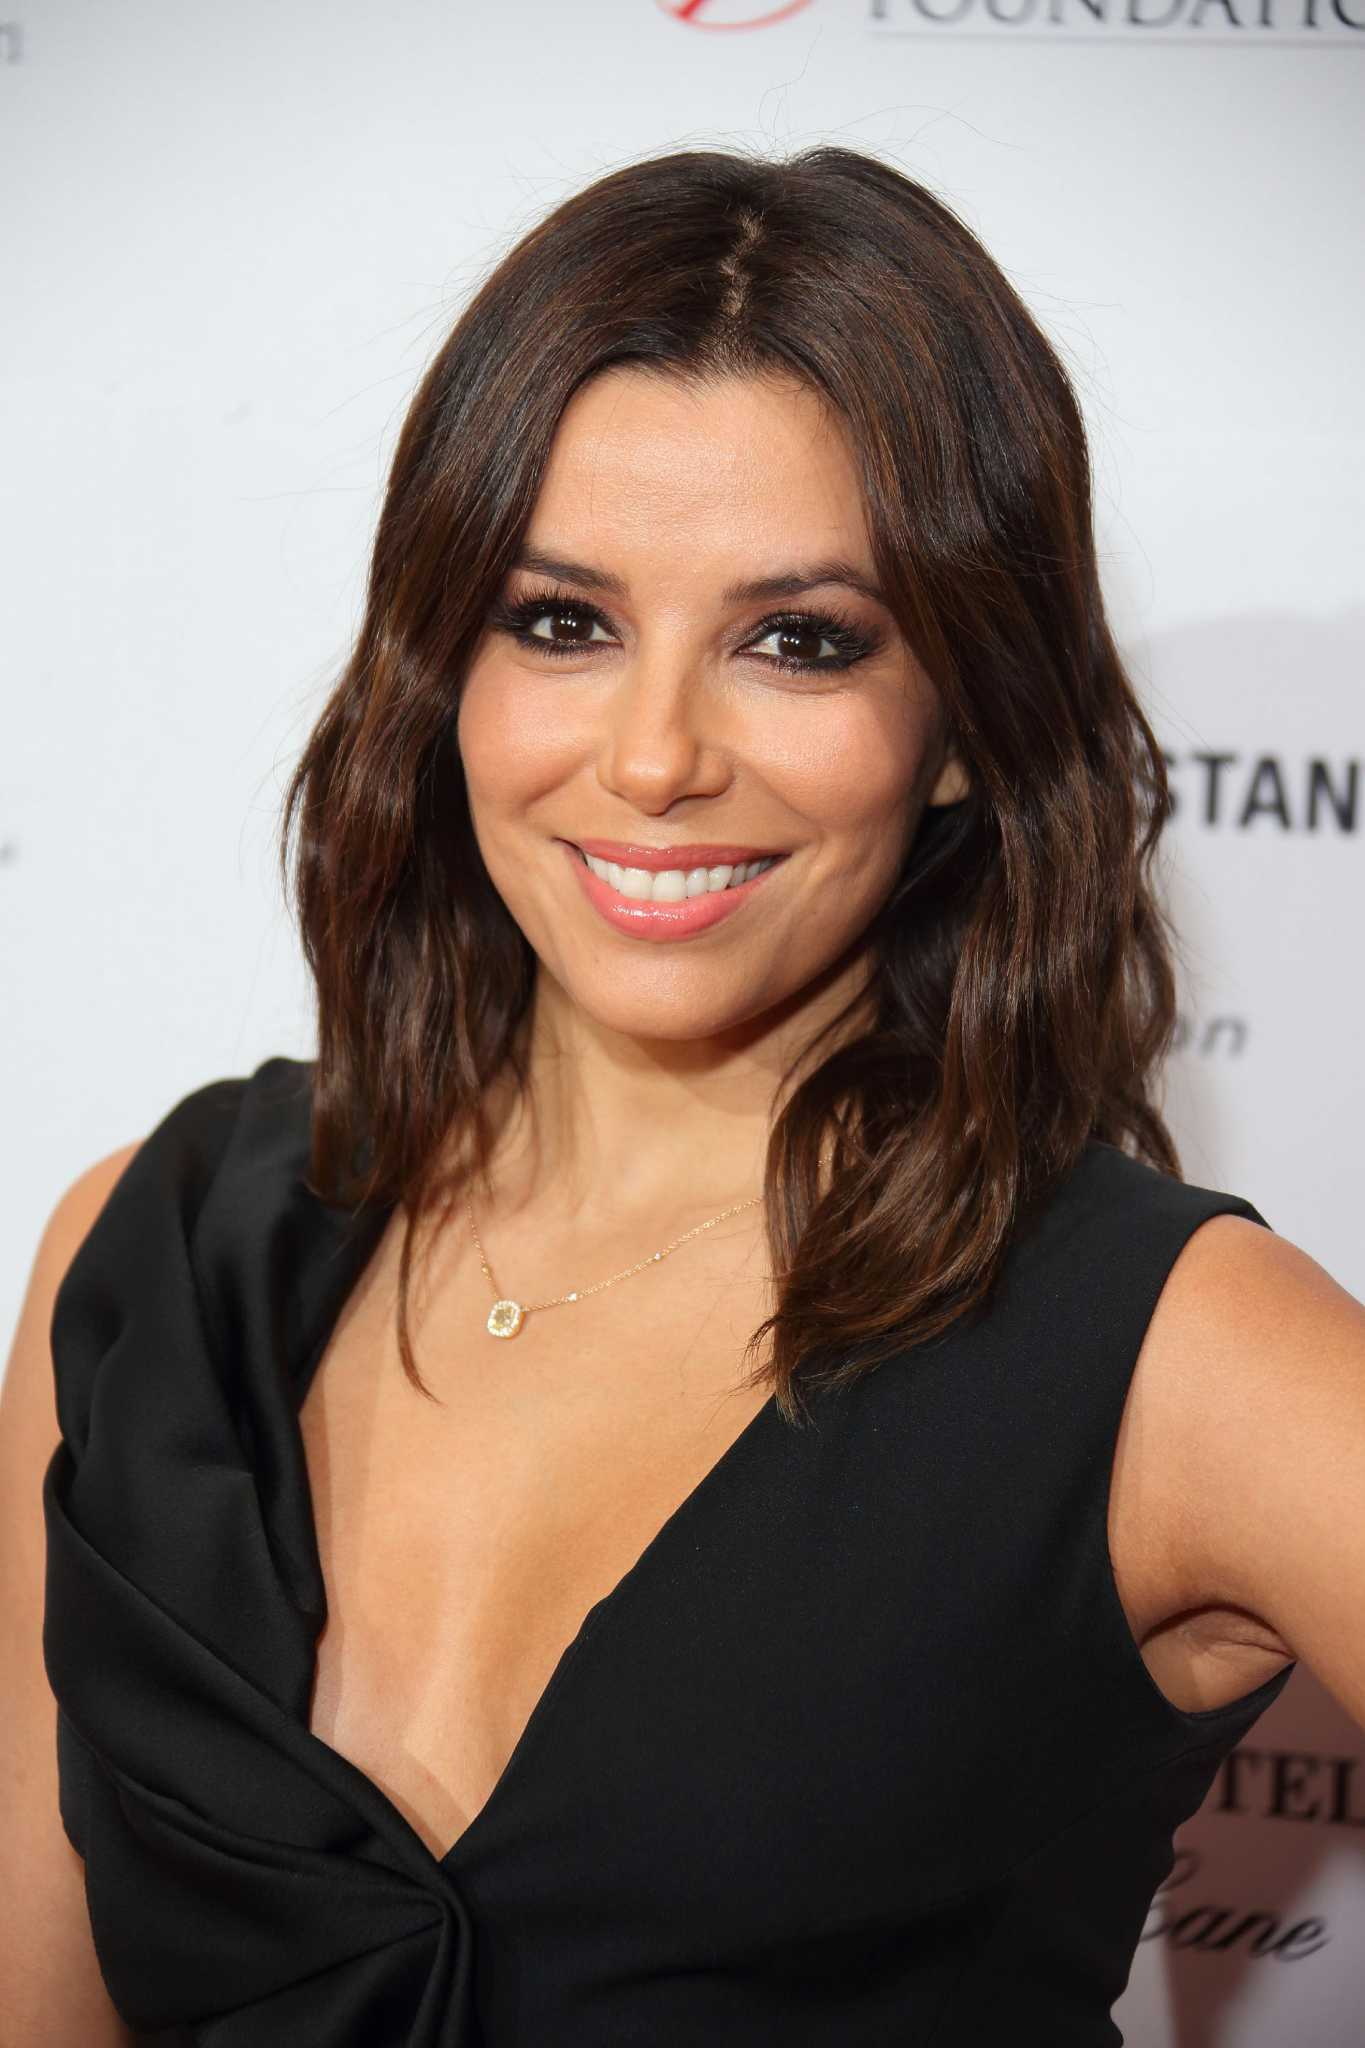 Eva Longoria Shows Off Her New Shorter Haircut In London